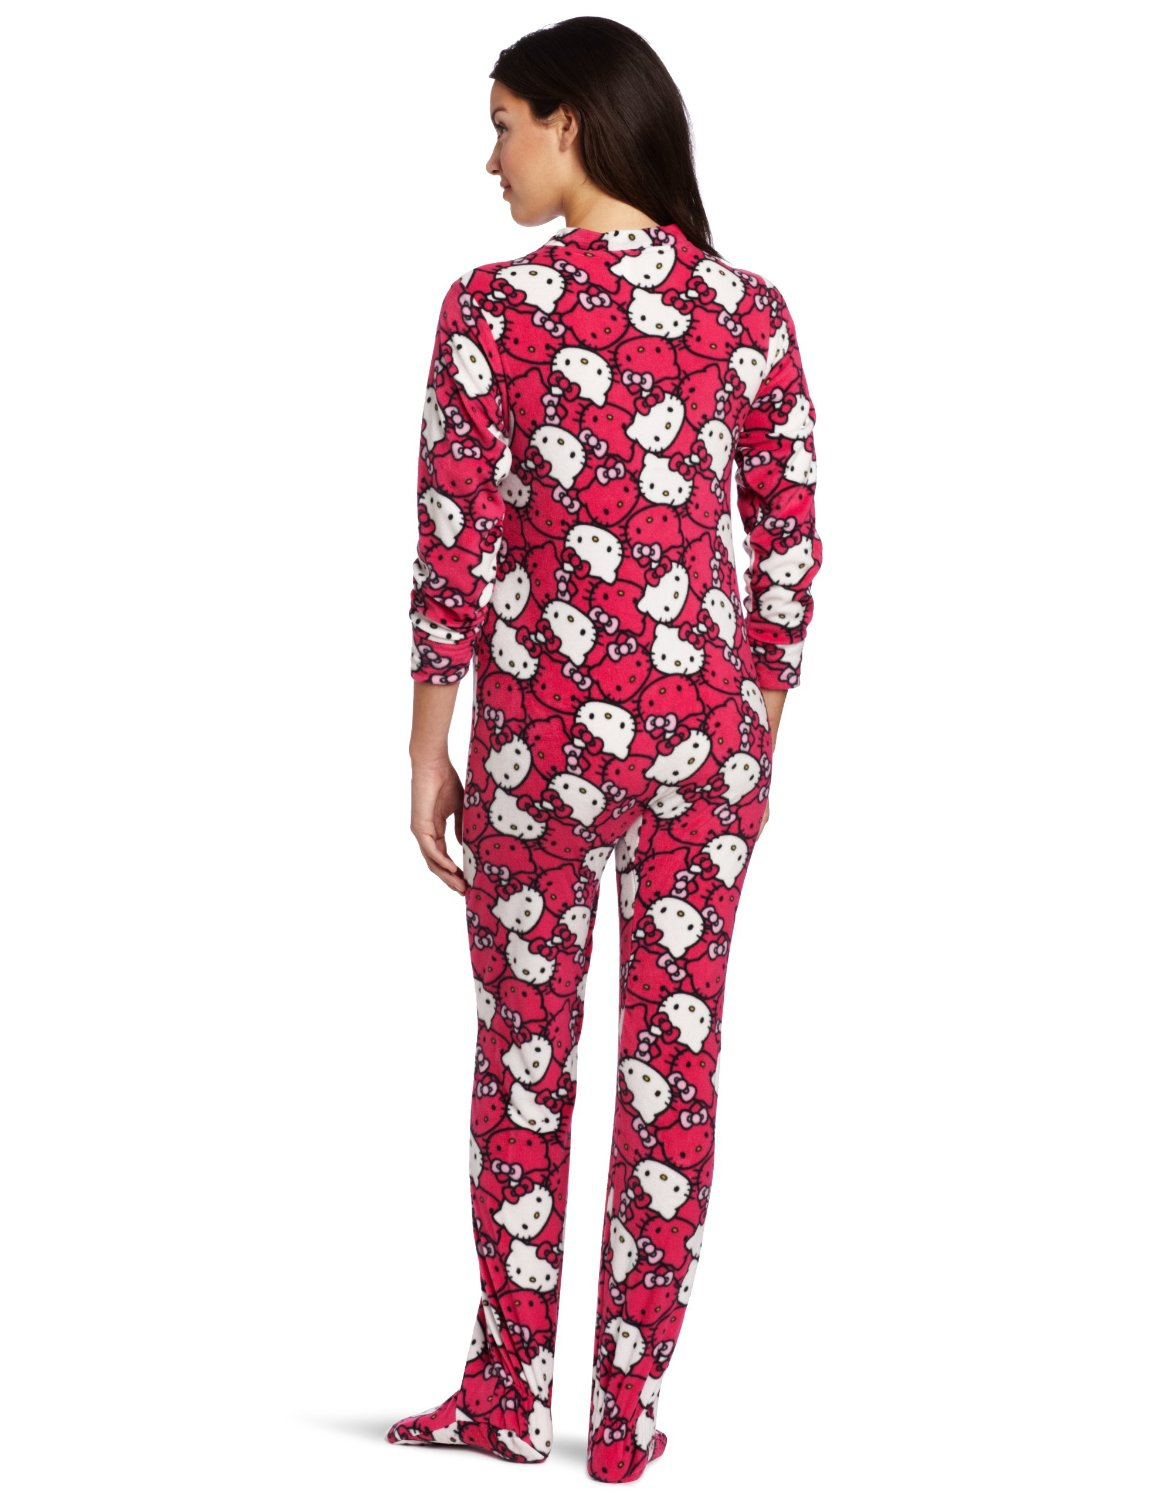 All adult onesies are available in Footed and Non-Footed options. Super soft and comfortable to maximize lazy lounging. See our wide variety of non-footed and footed onesie pajamas for men and women! Personalize Onesies. Embroider your onesies with text or your own art Learn More. These lazy features make sure that once you slide into.